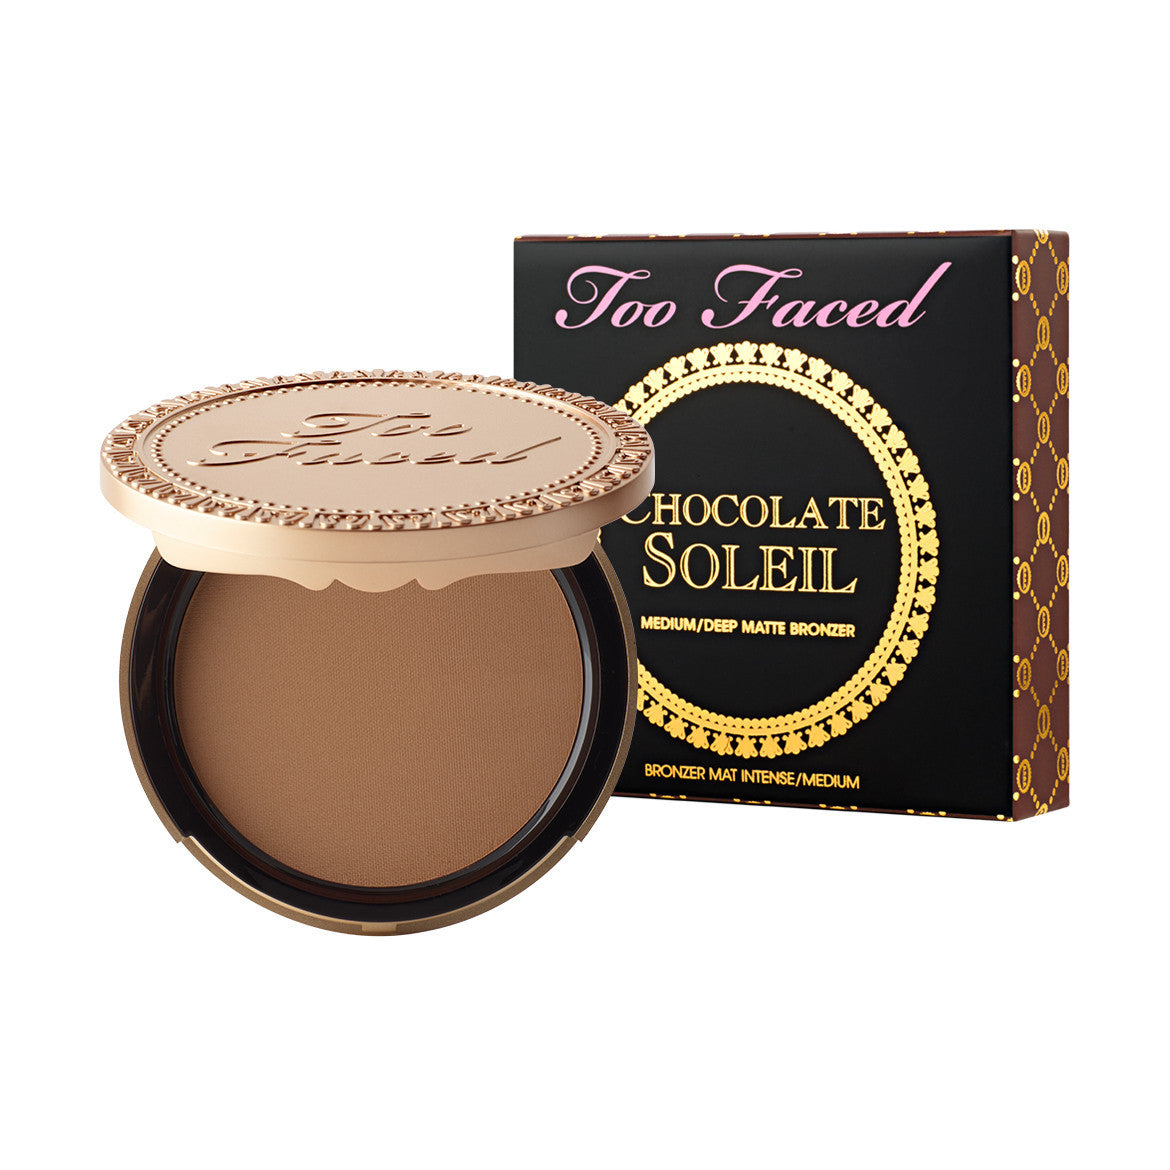 Buy Too Faced Cosmetics & Makeup Products In Australia - MYQT.com.au